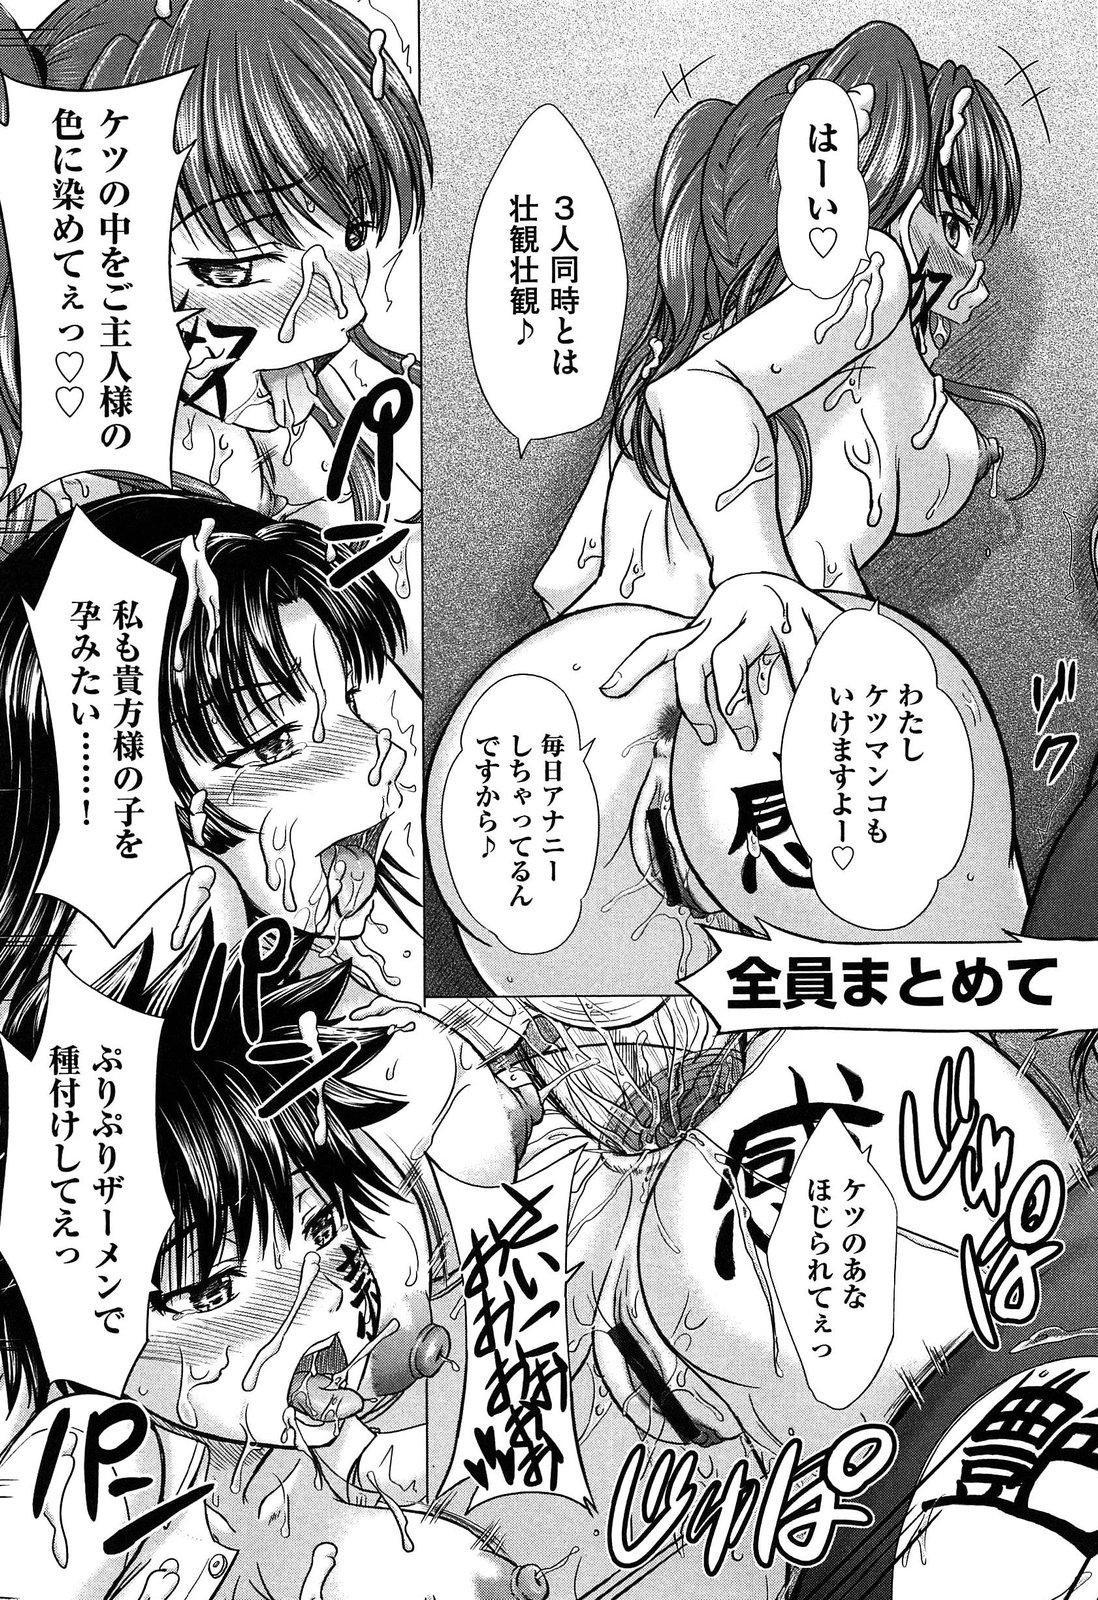 Houkago Kouhai Note   After School Mating Notes 160